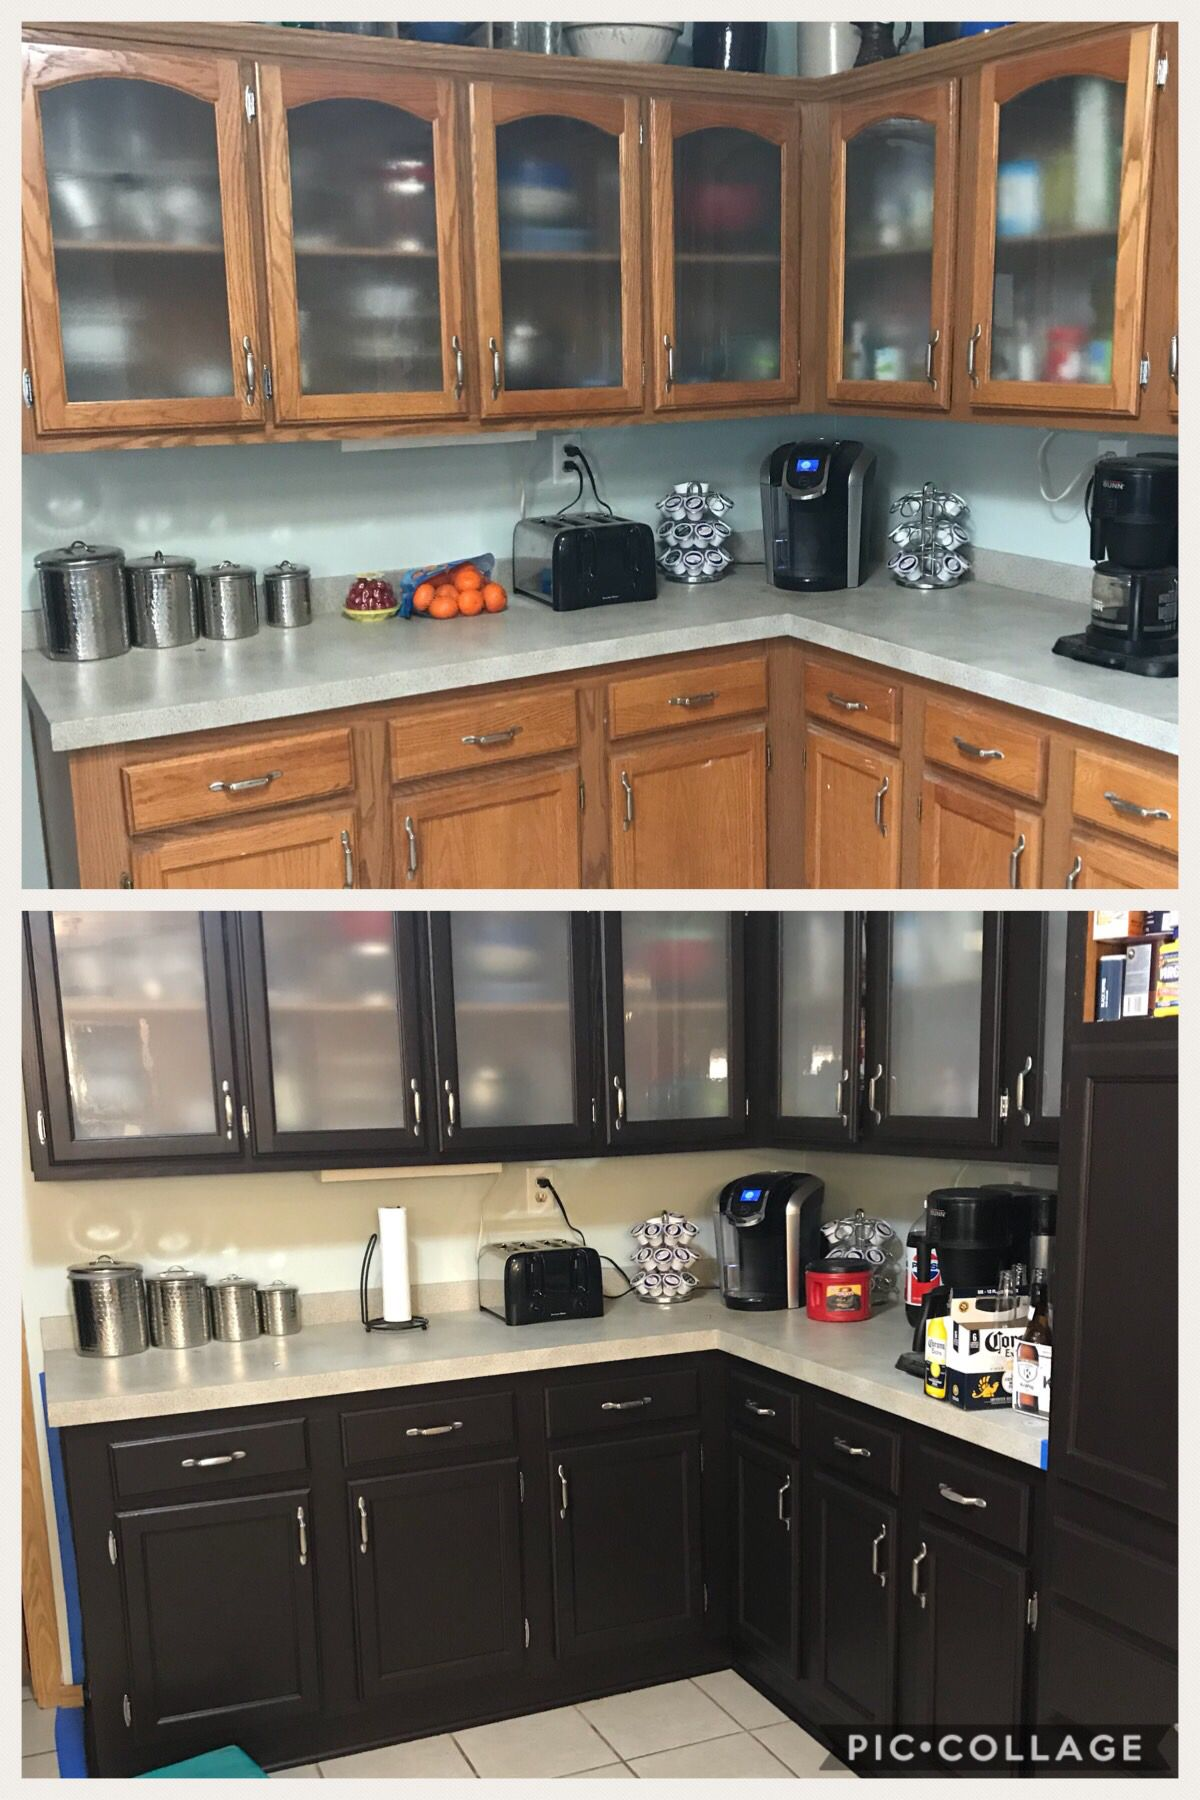 General Finishes Milk Paint In Dark Chocolate Before And After On Our Orangey Oak Kitchen Cabinetry Design Milk Paint Kitchen Cabinets Painting Oak Cabinets